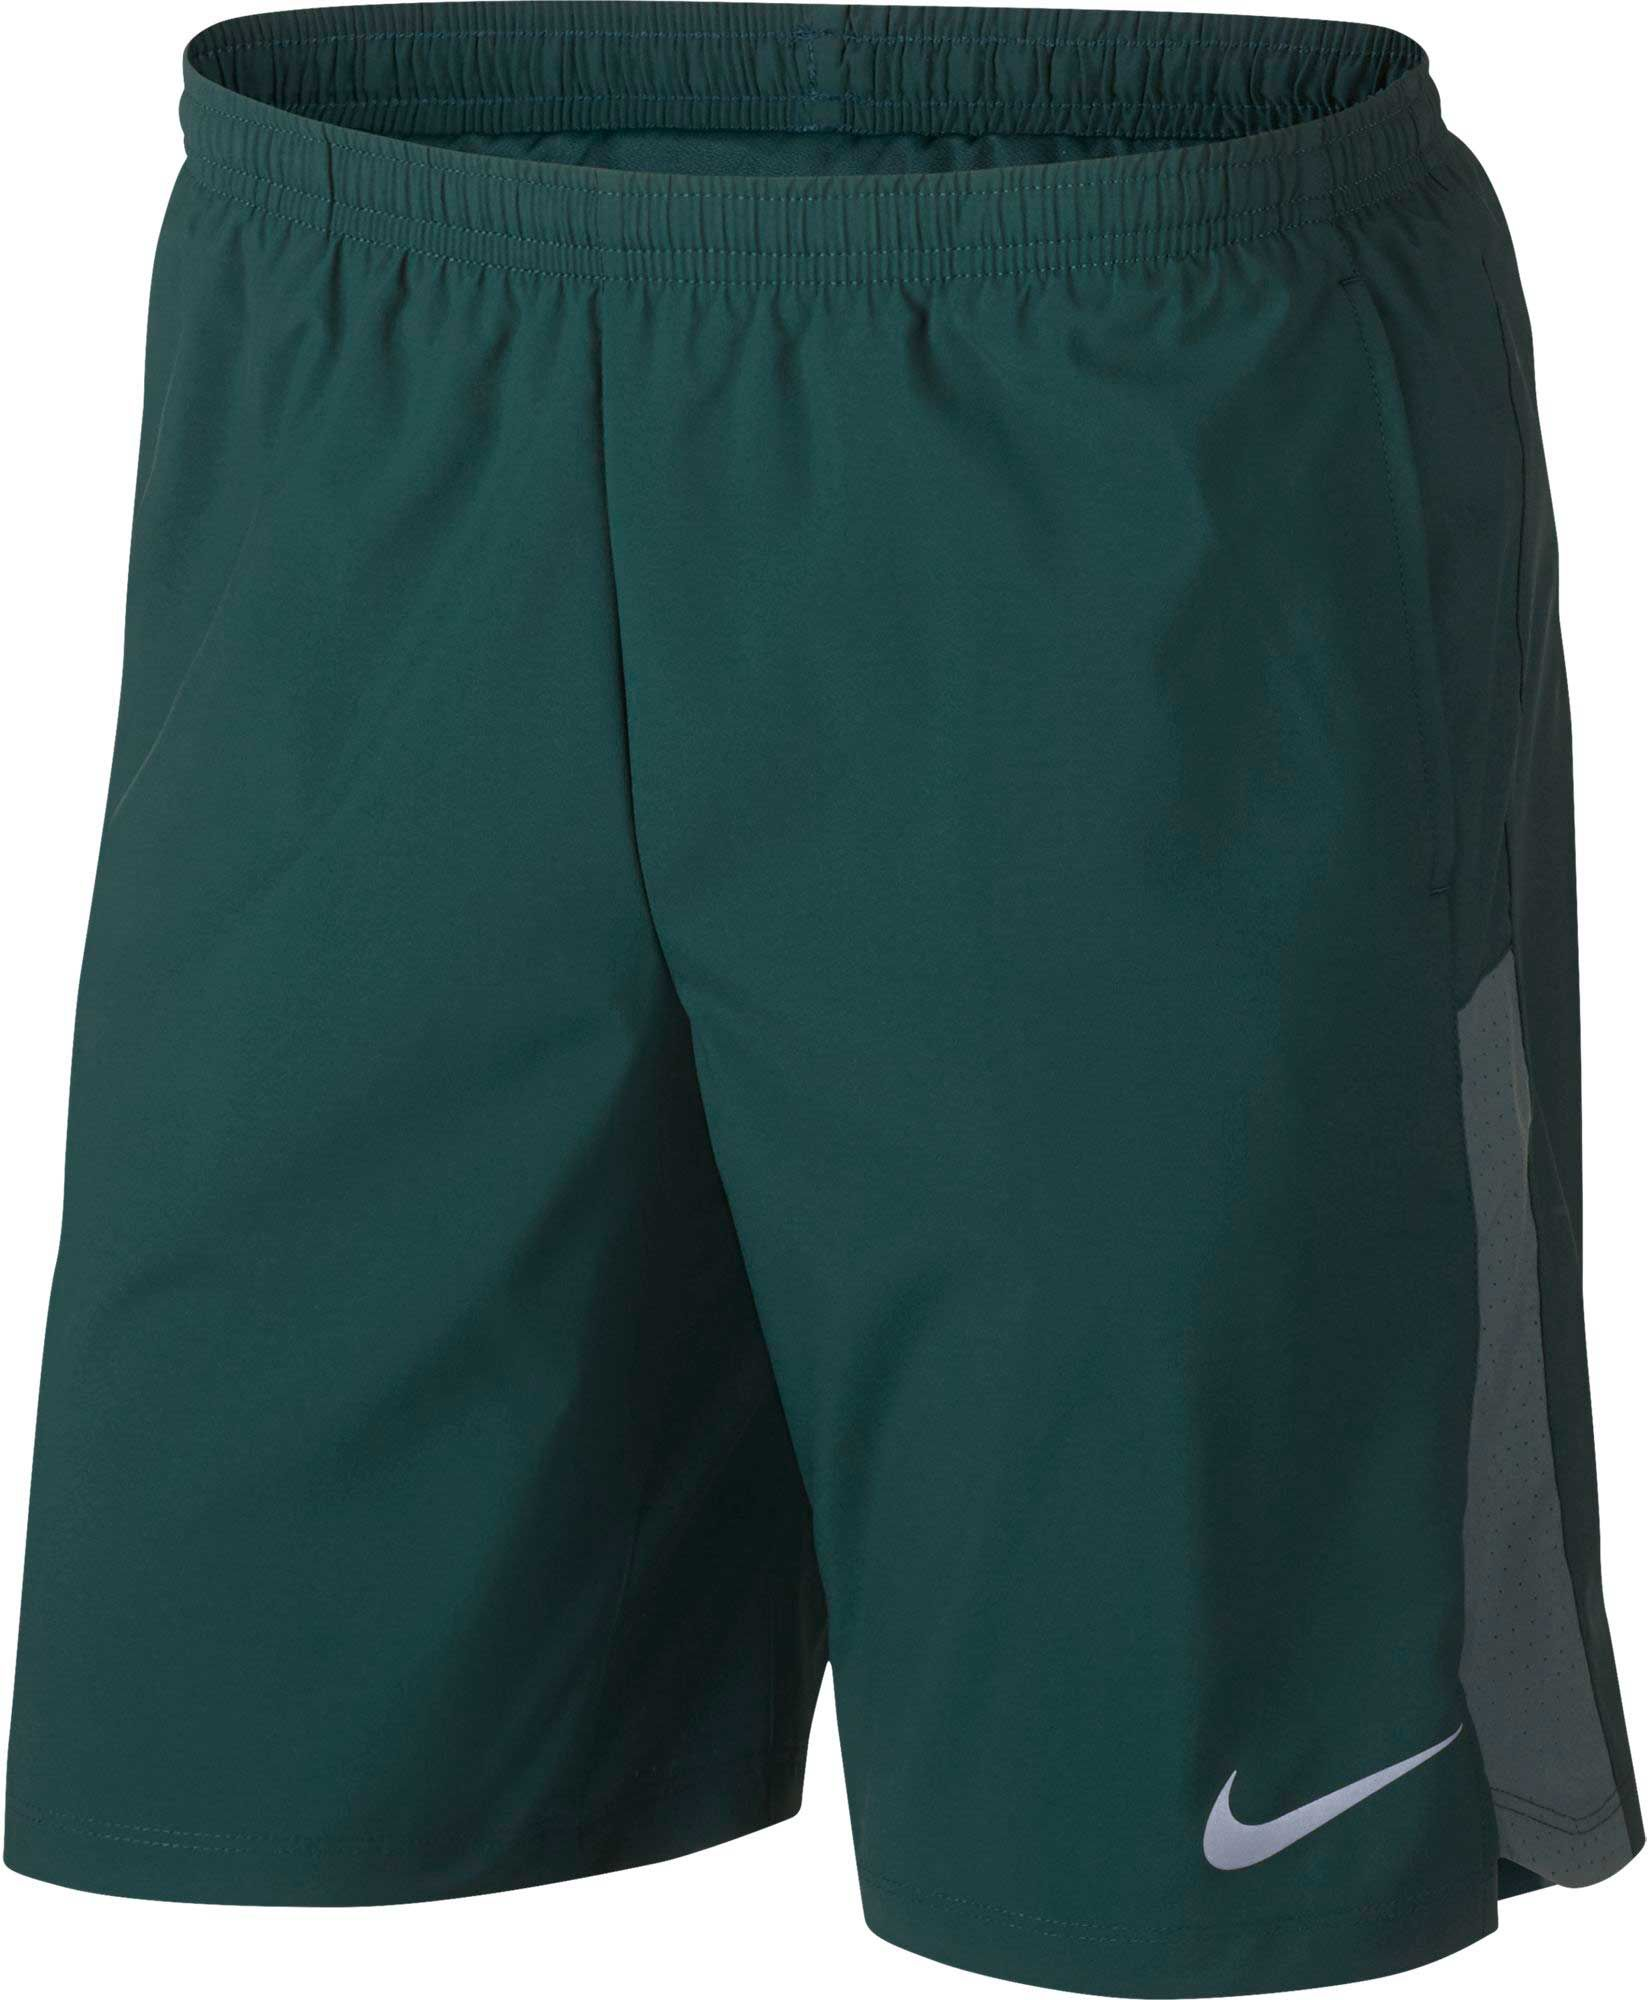 Nike Men's 9'' Flex Running Shorts by Nike